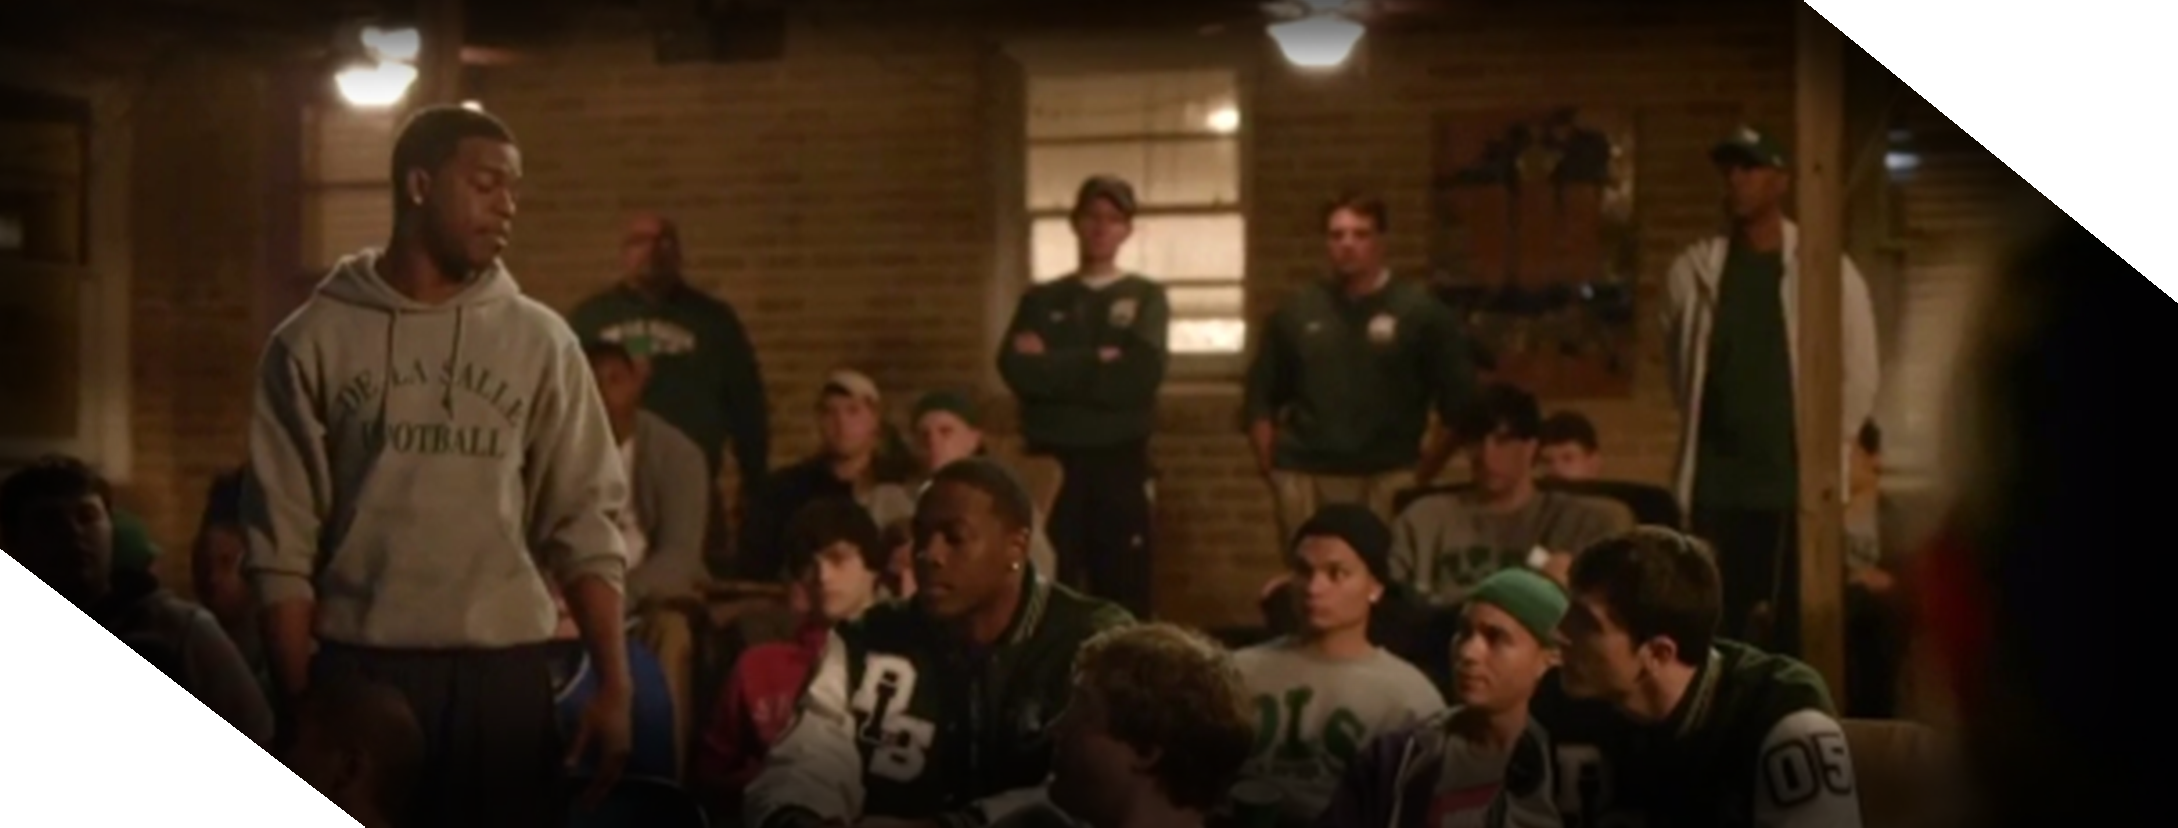 WHEN THE GAMESTANDS TALL -